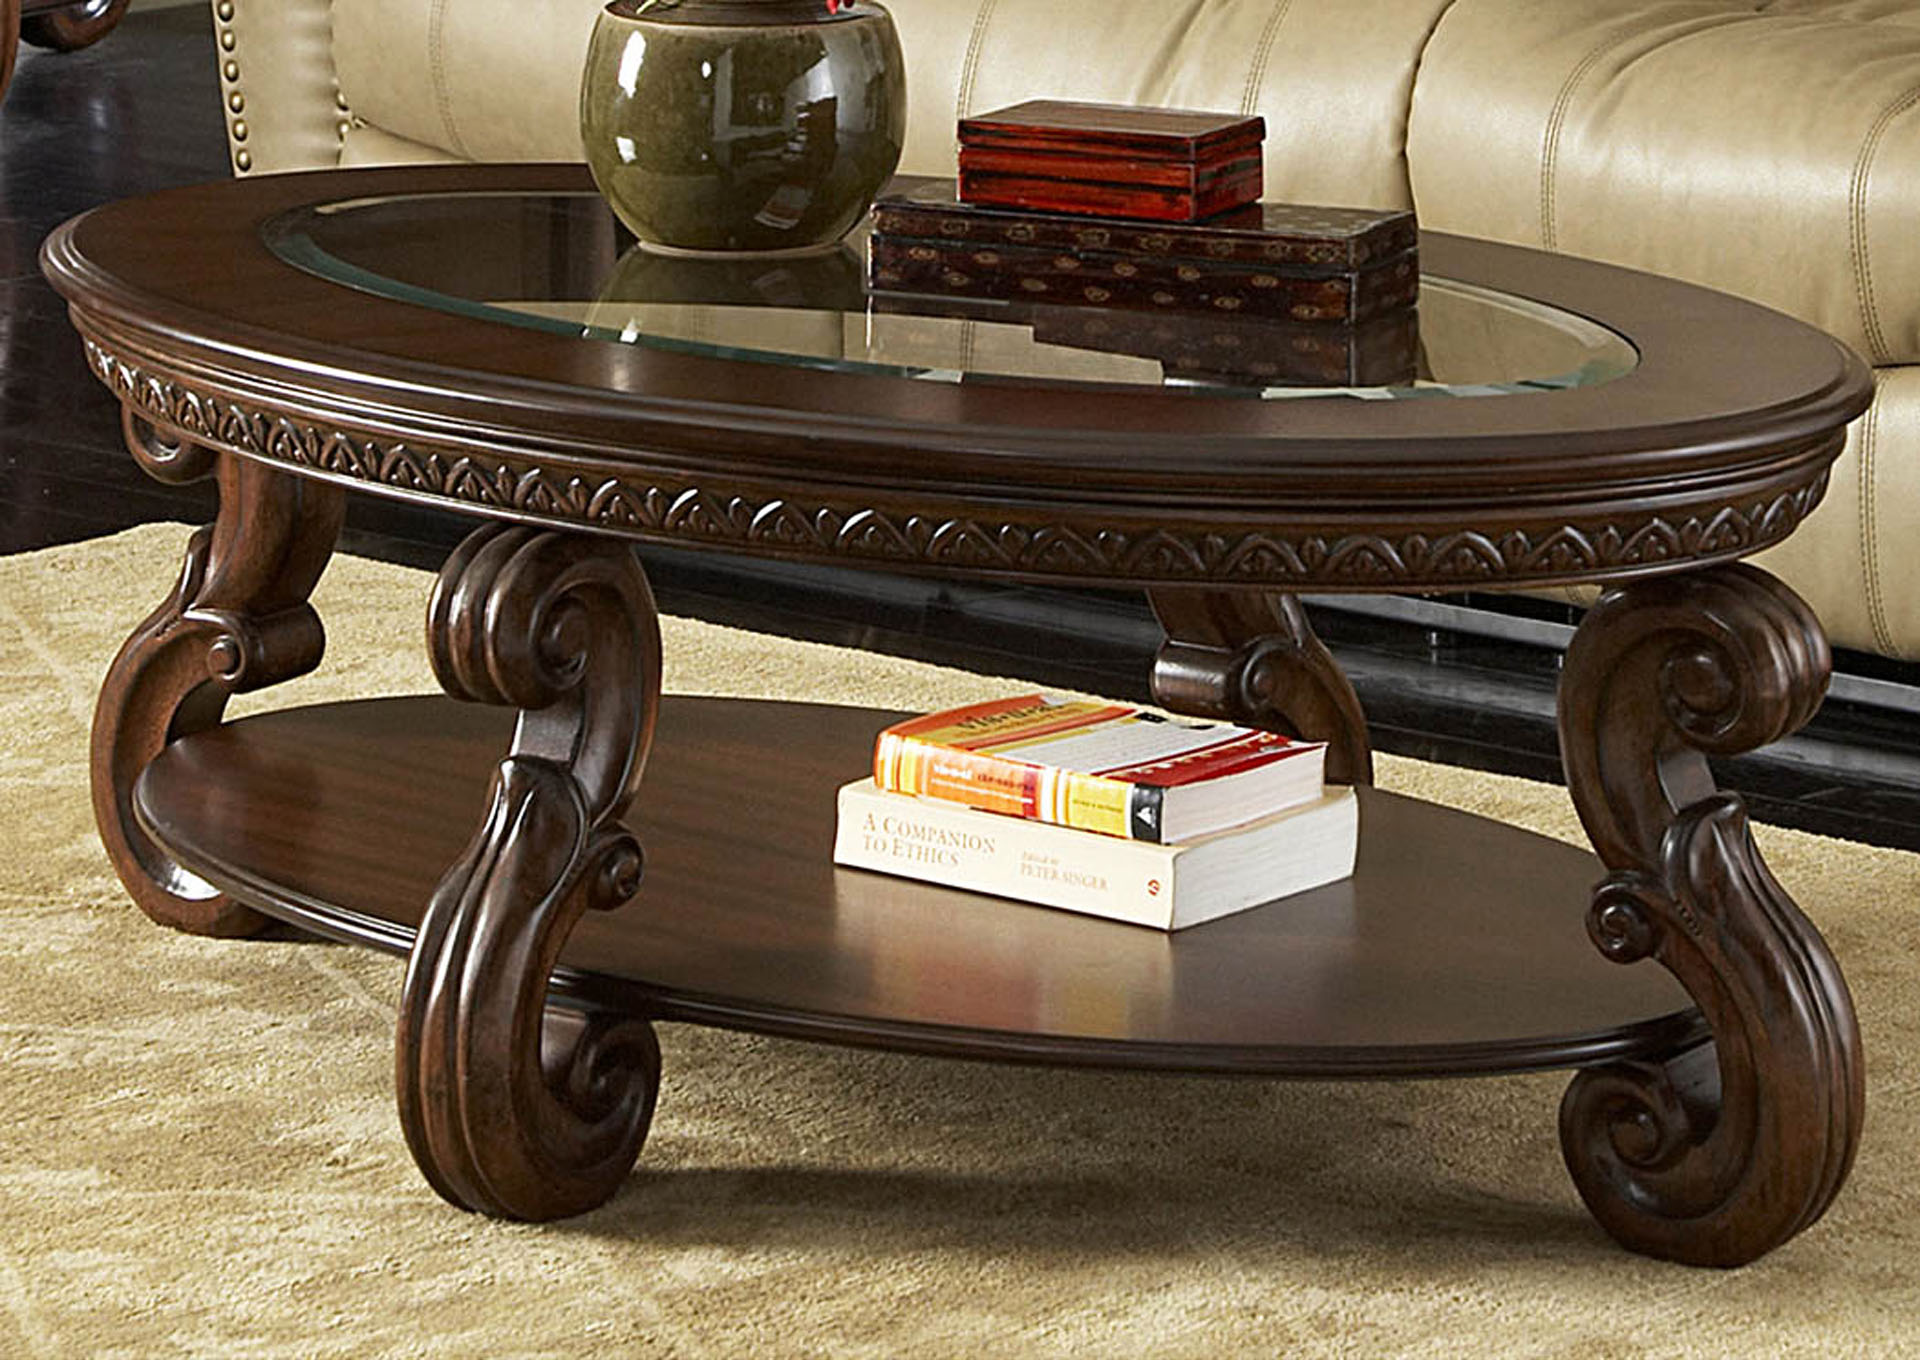 Cavendish Warm Cherry Oval Cocktail Table w/Glass Insert Top,Homelegance